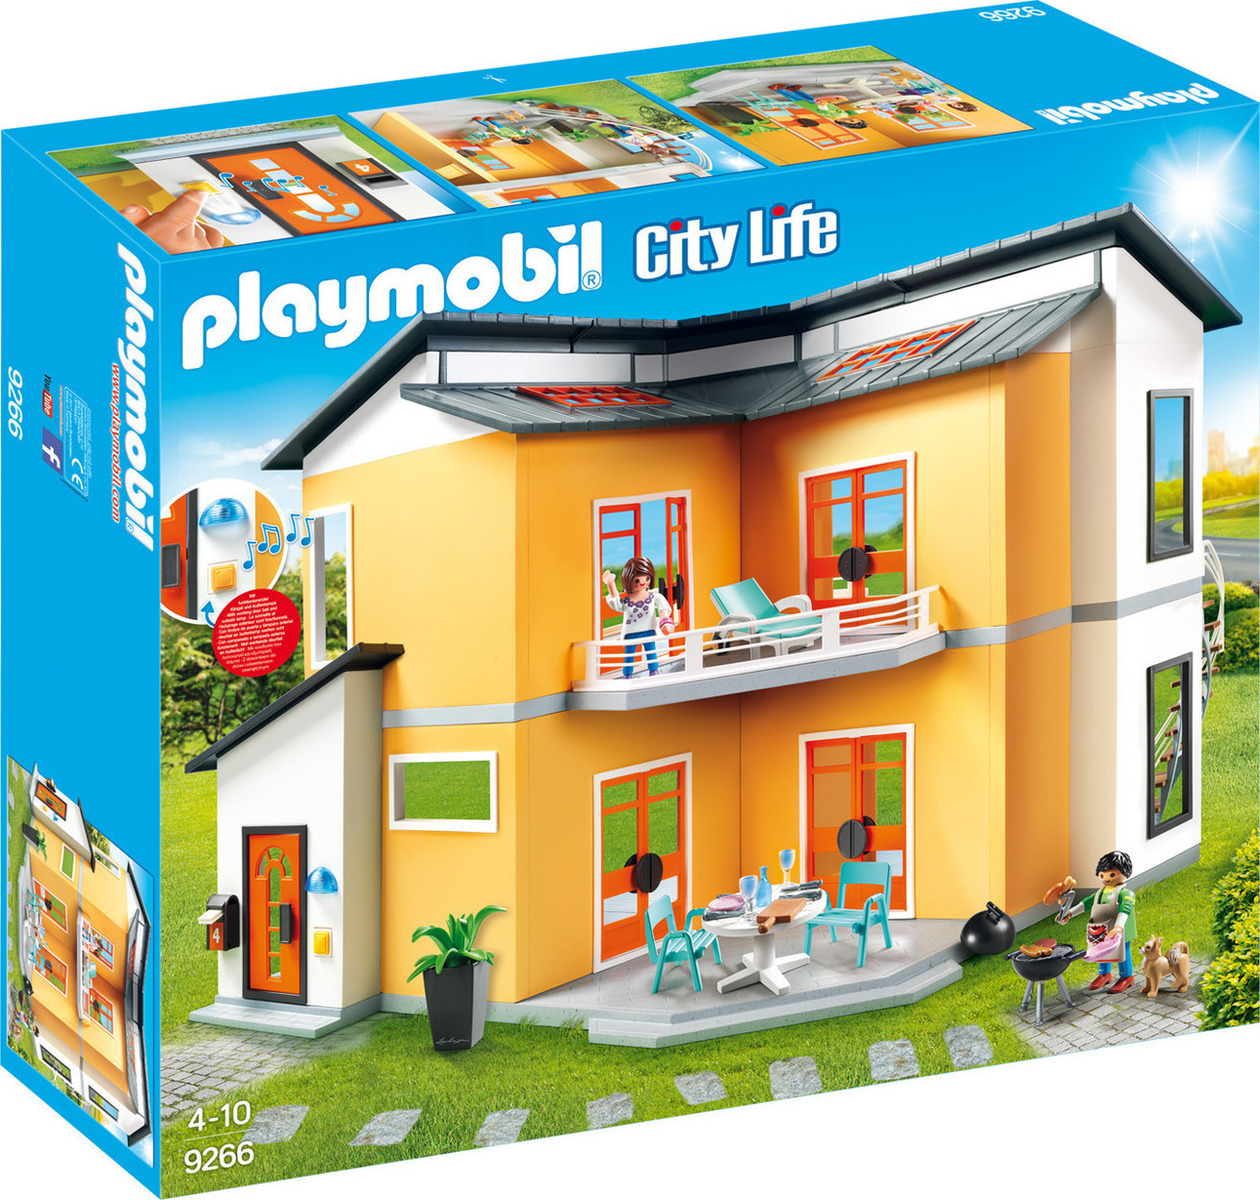 playmobil city life modern house. Black Bedroom Furniture Sets. Home Design Ideas